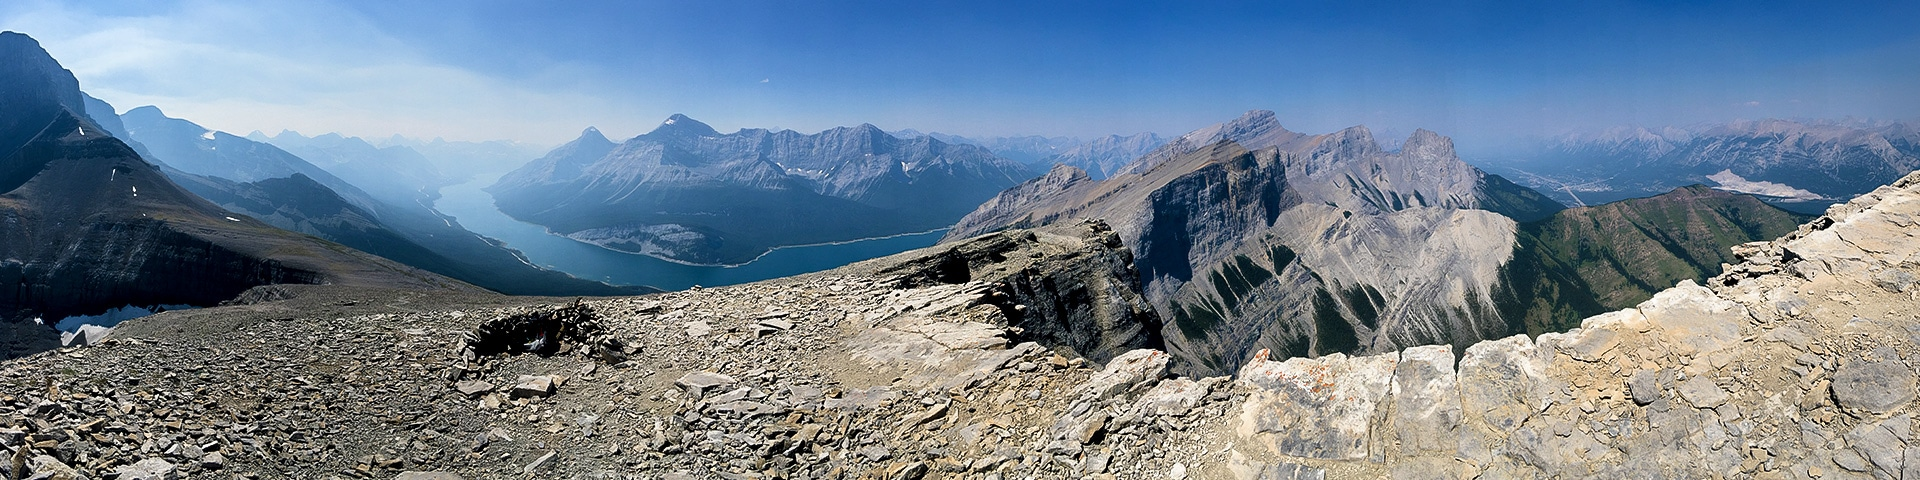 Panorama of the Windtower hike from Smith-Dorrien Trail in Kananaskis near Canmore